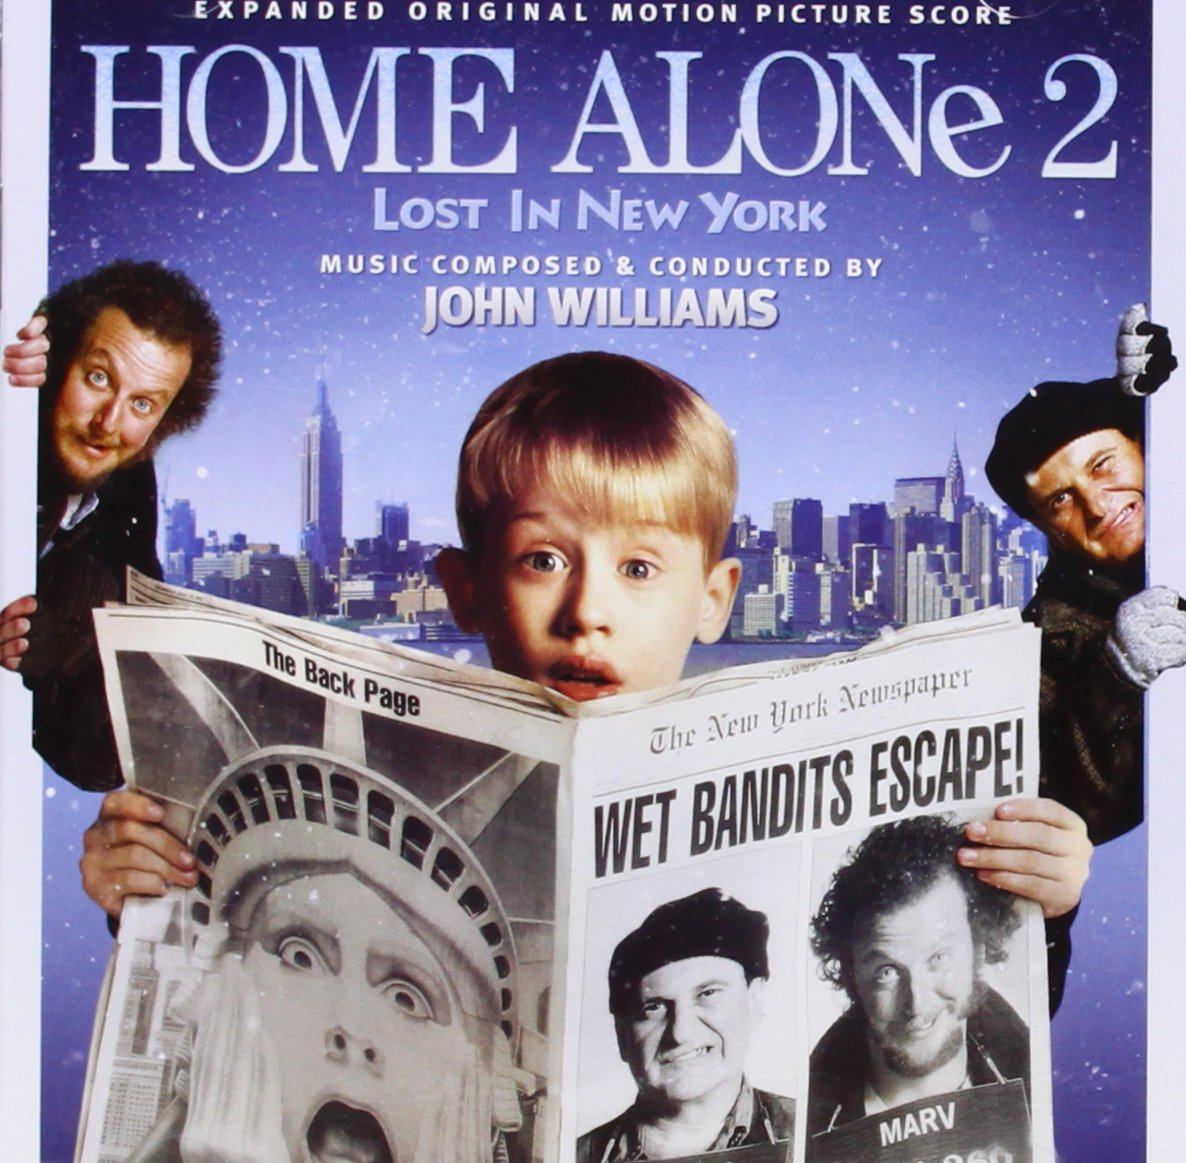 bande originale soundtrack ost score maman raté encore avion home alone 2 lost new york disney fox